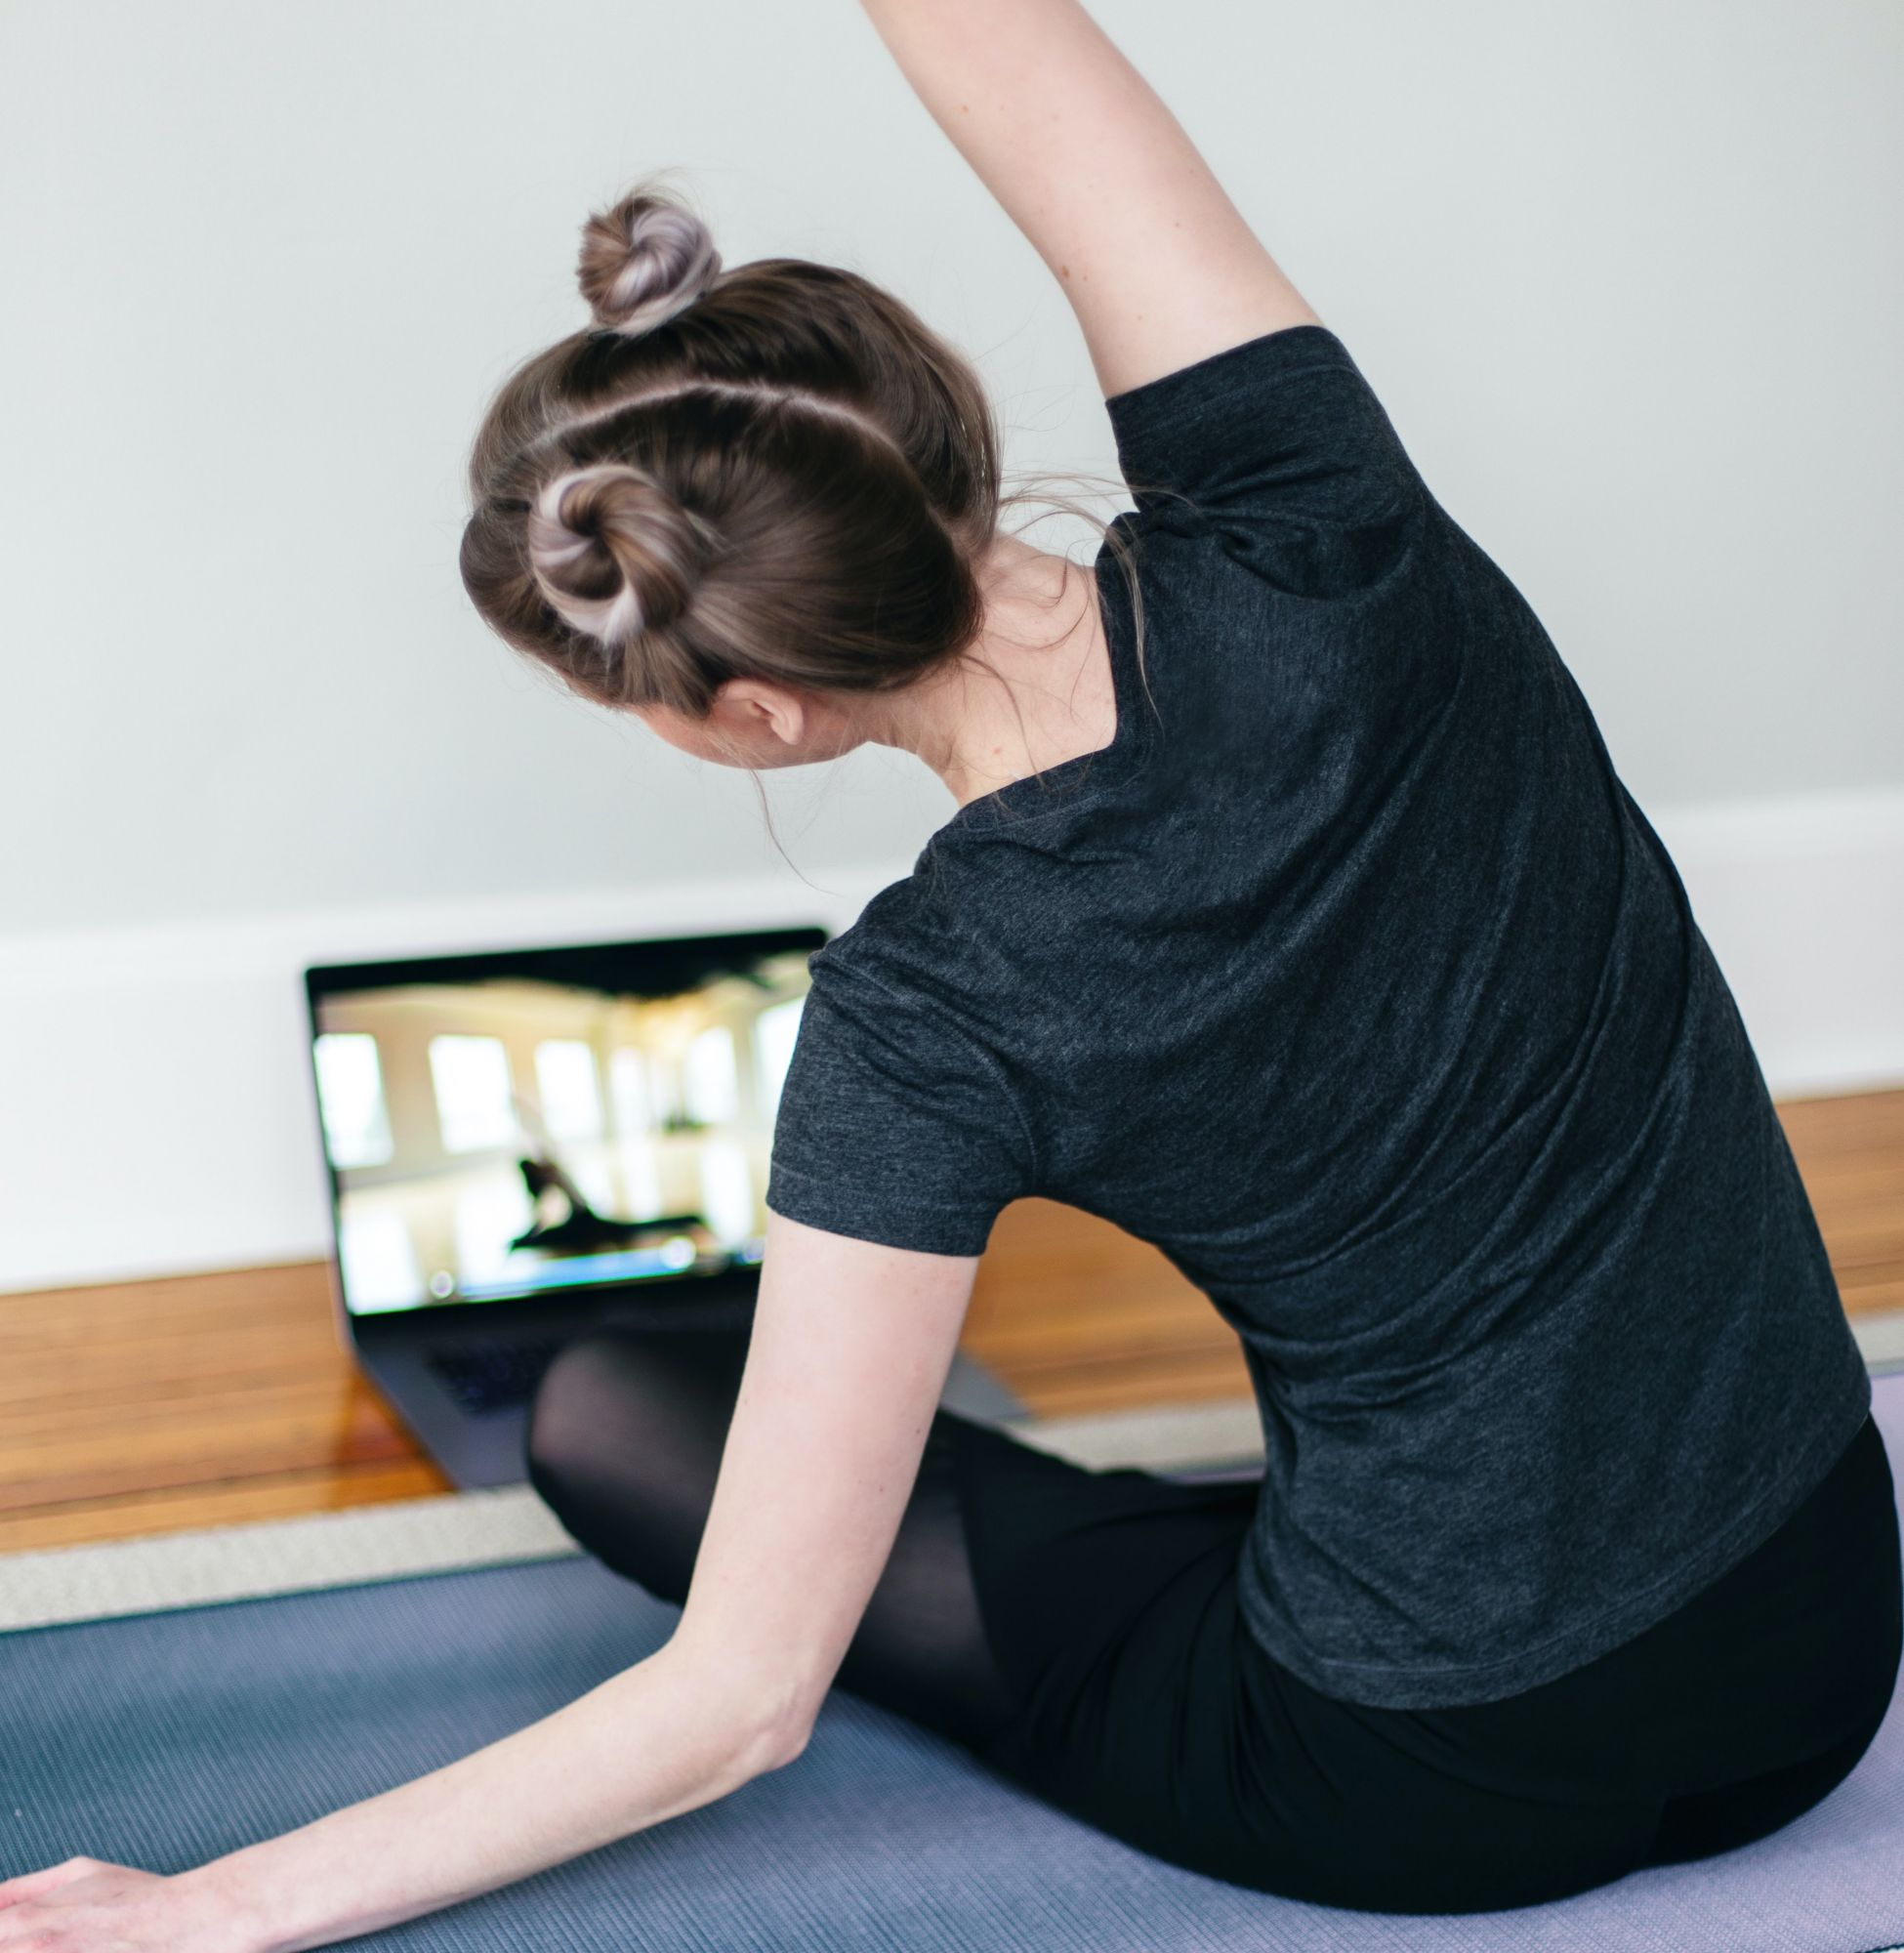 5 Easy Home Workout Routines To Help You Lose Weight Fast